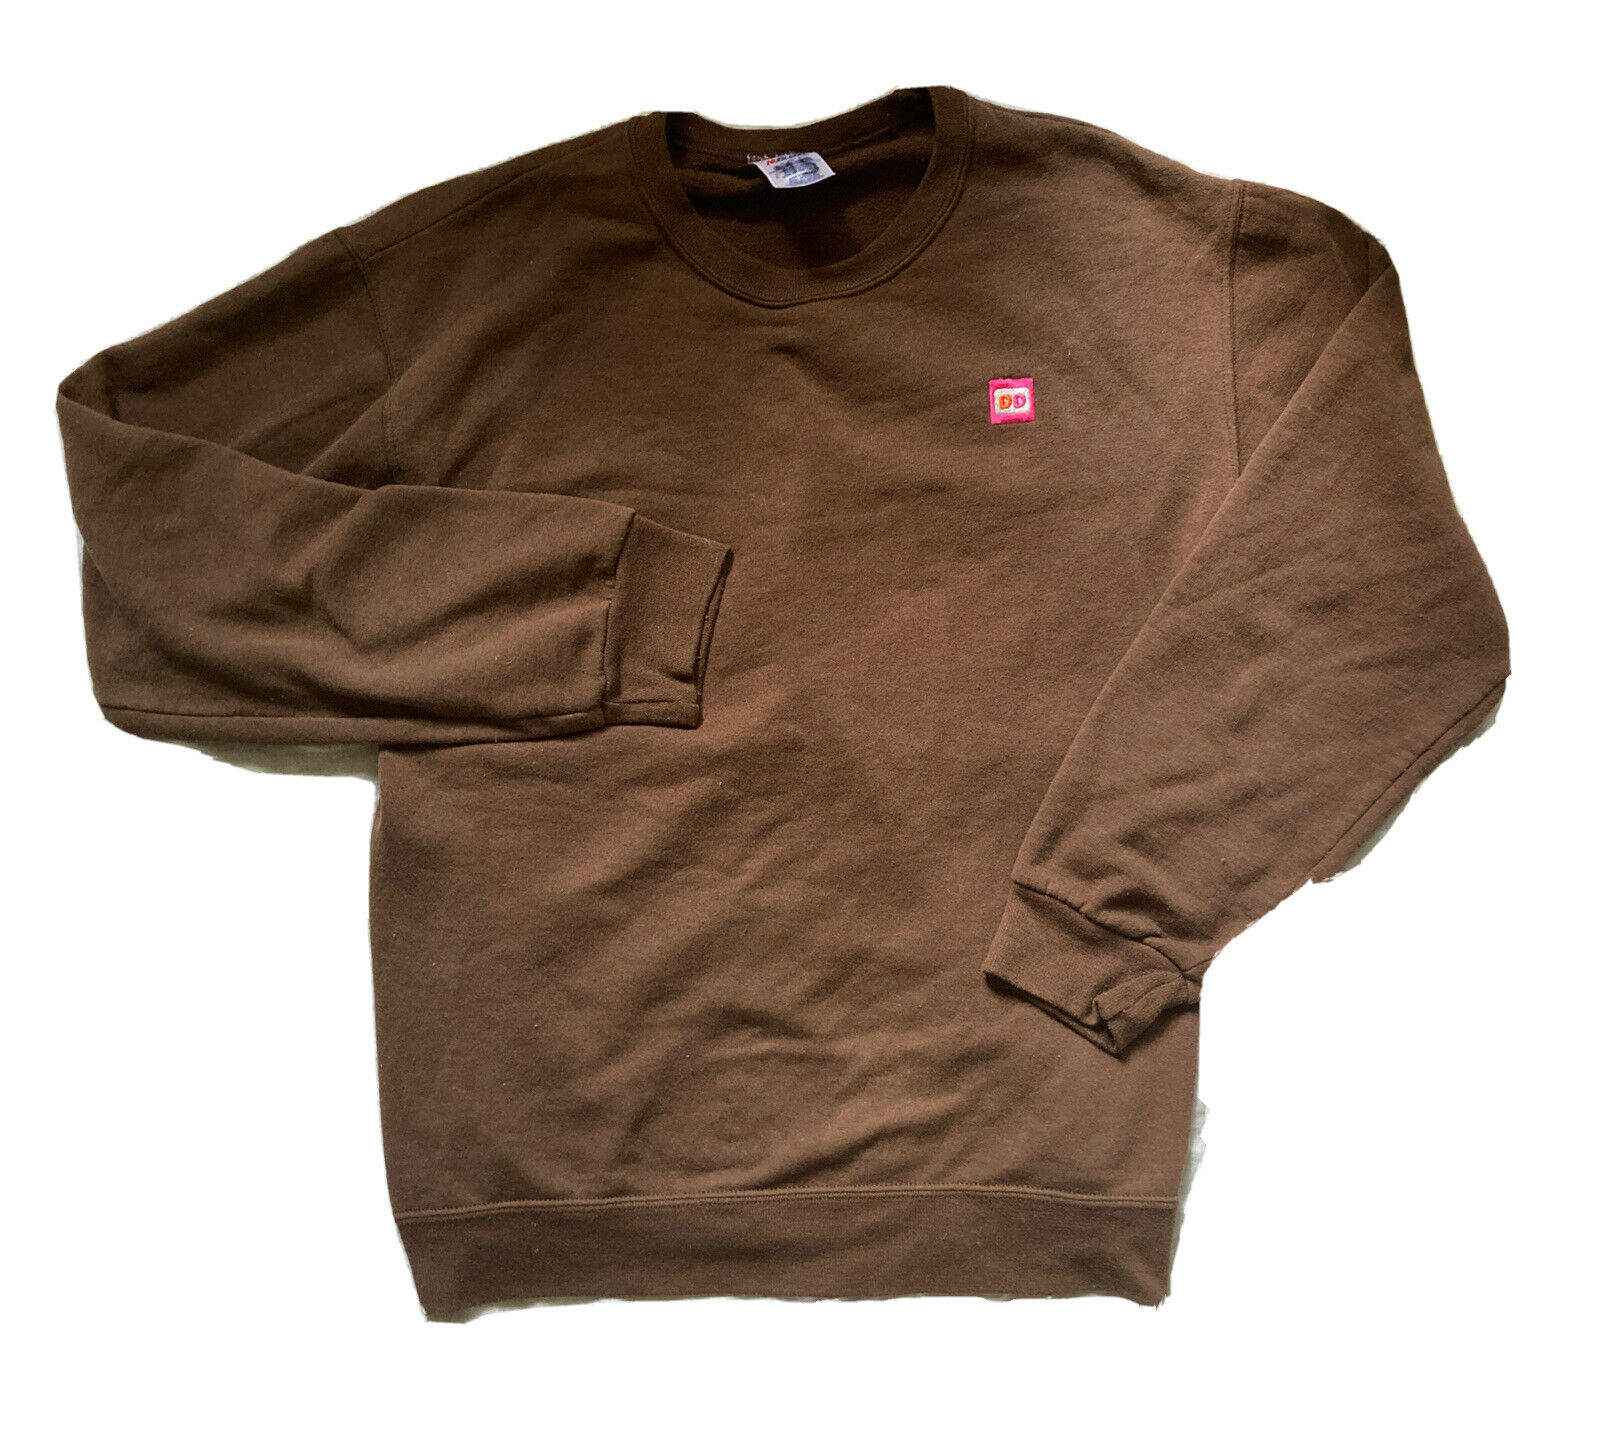 Pre-Owned Retired Extra Large Dunkin Donuts Employee Uniform Brown Sweatshirt DD